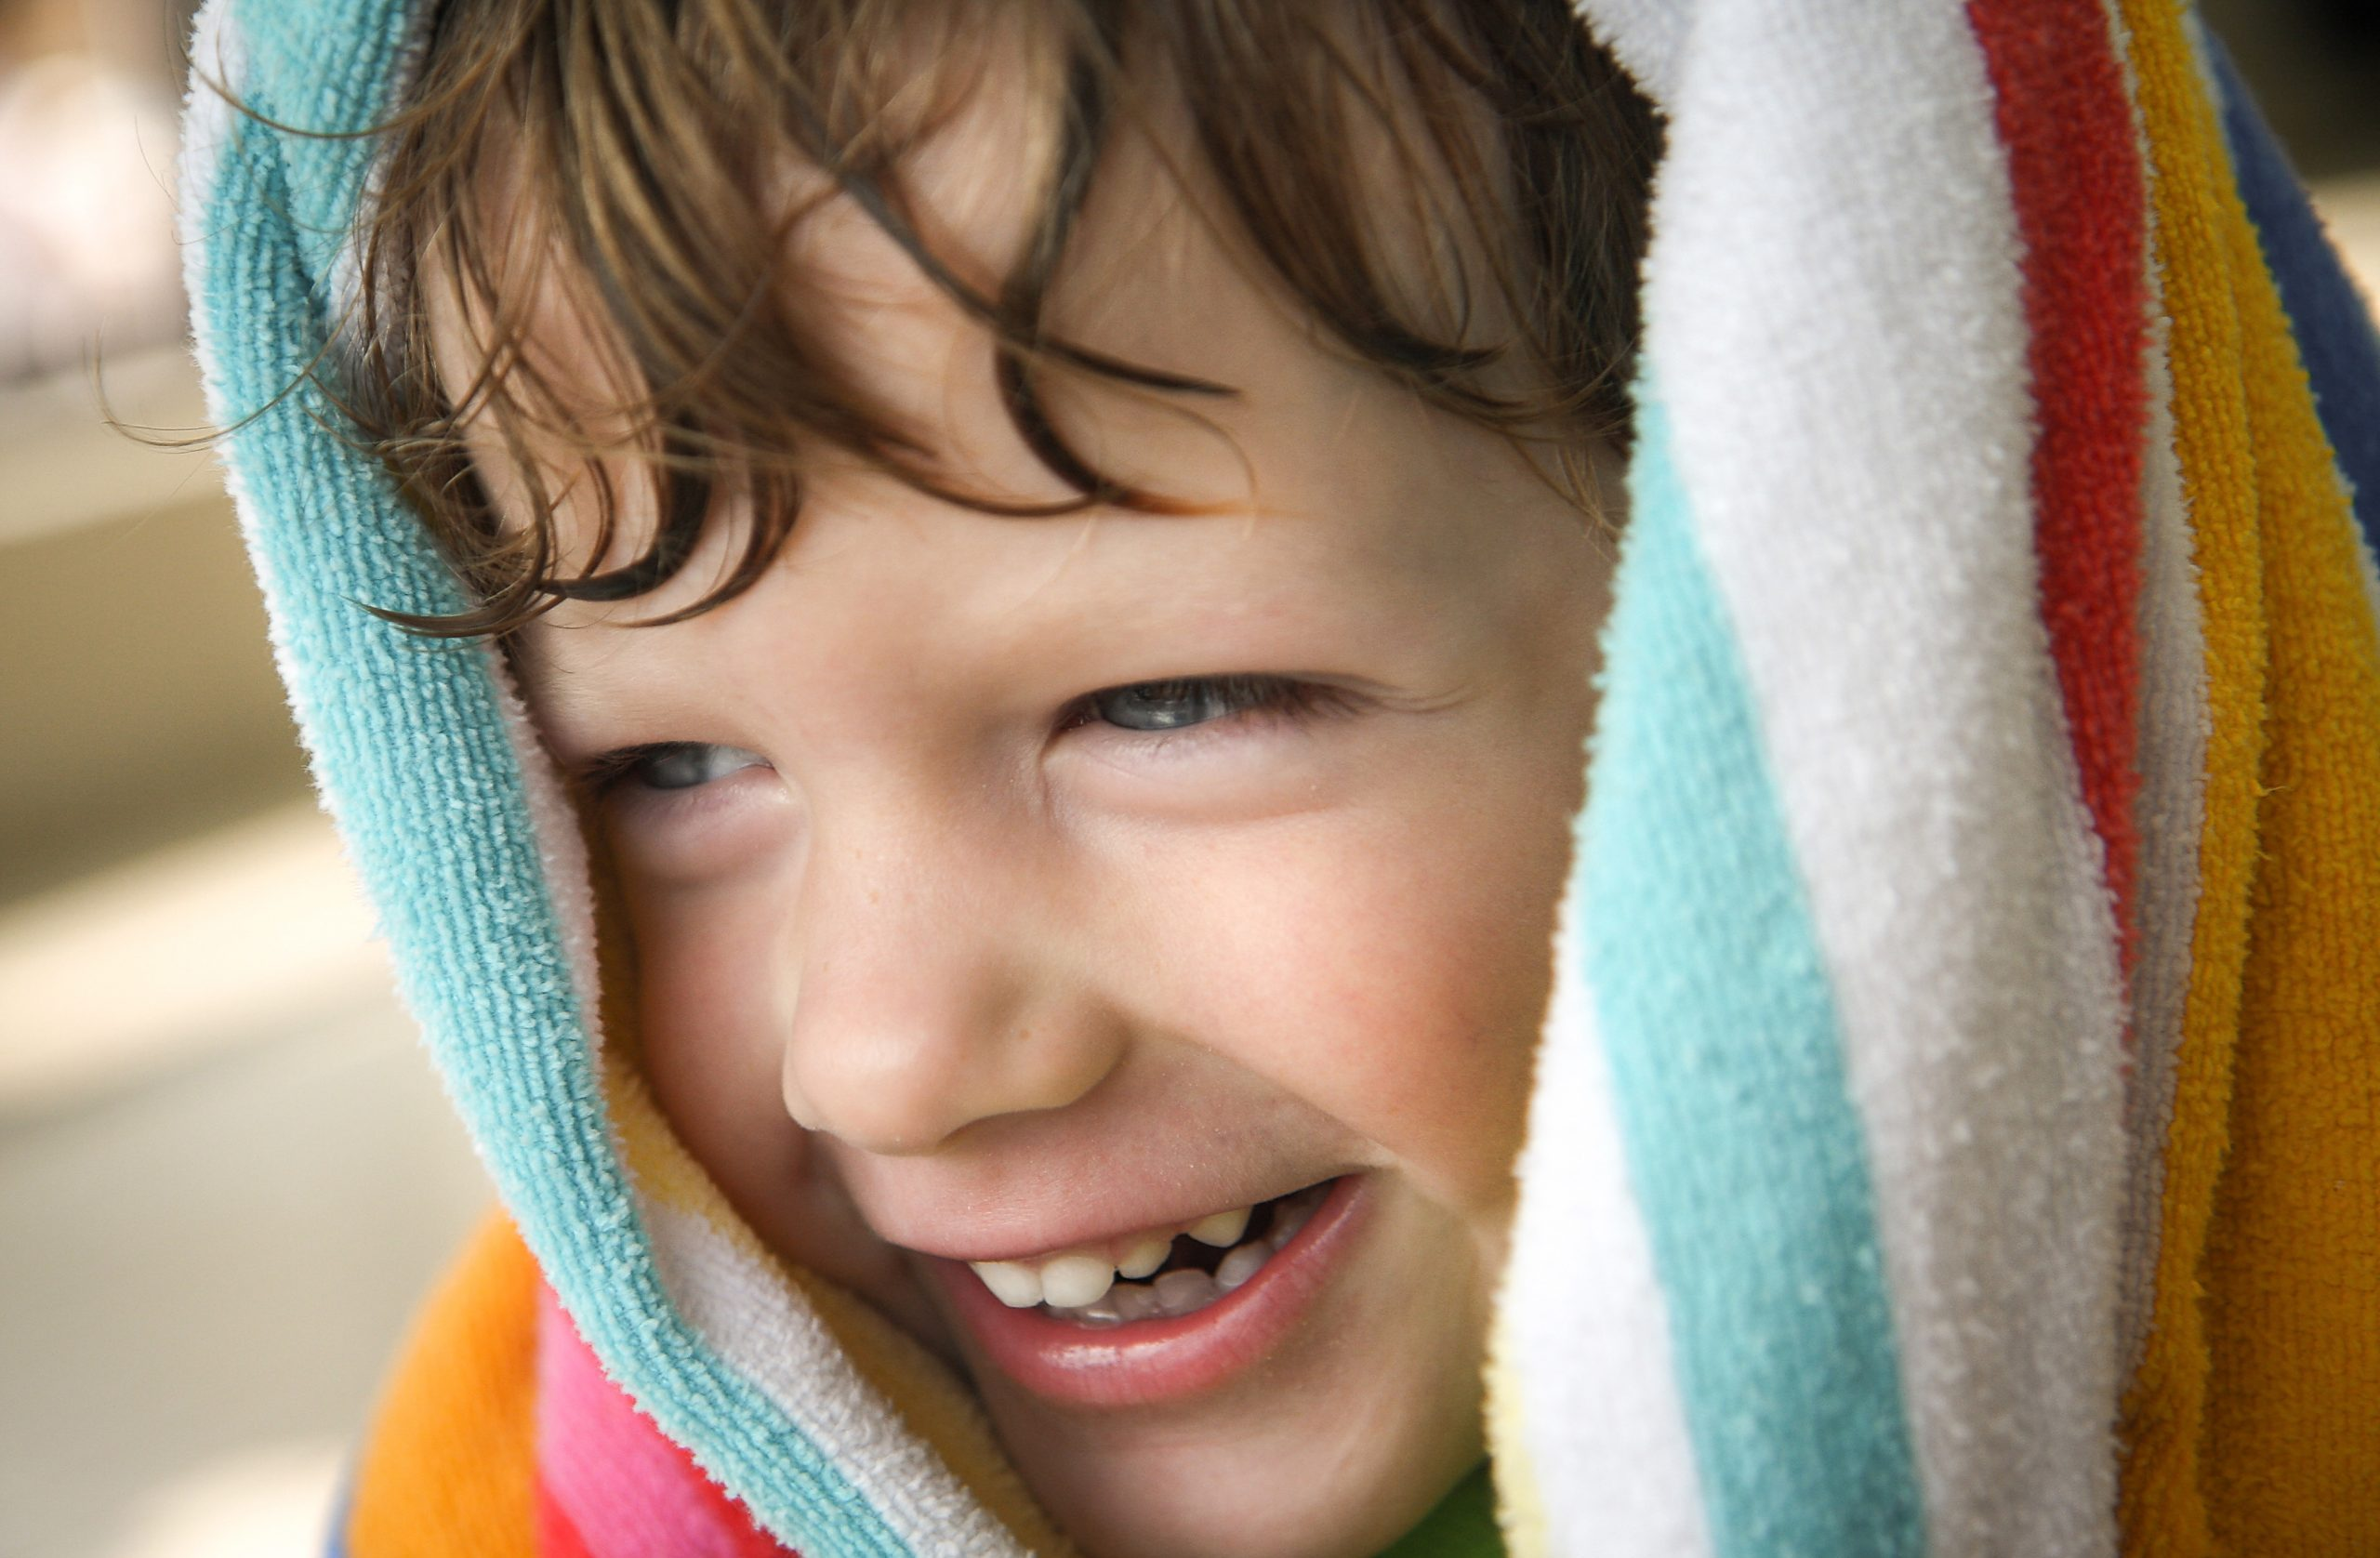 A young boy with a towel wrapped around his head smiles while drying off after getting out of a pool.